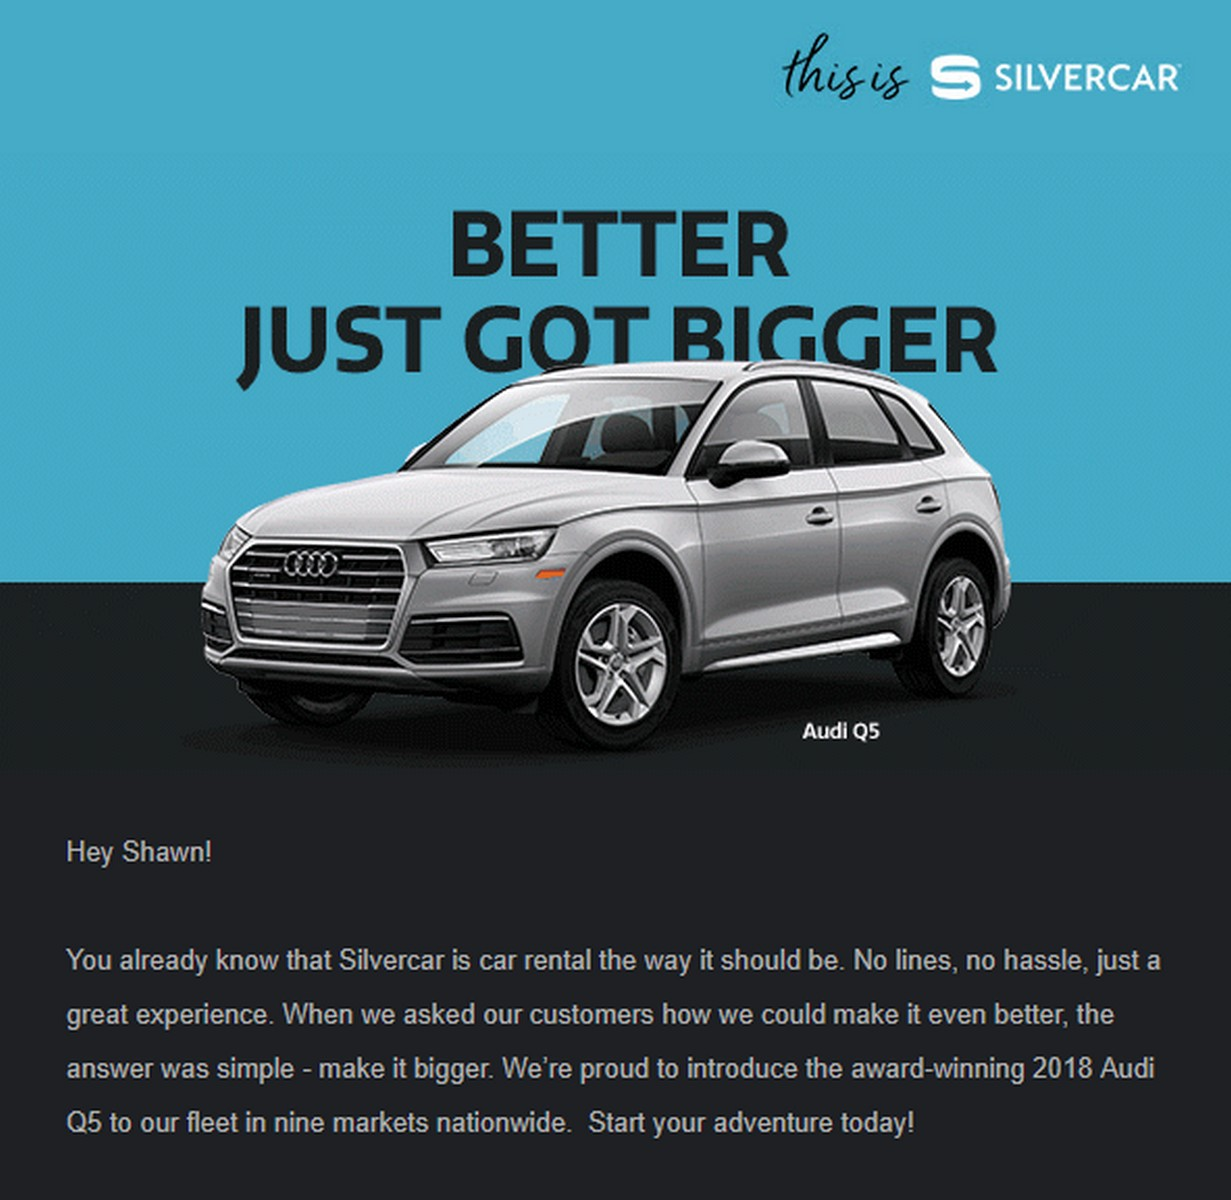 Silvercar Now Offers A SUV, The Audi Q5